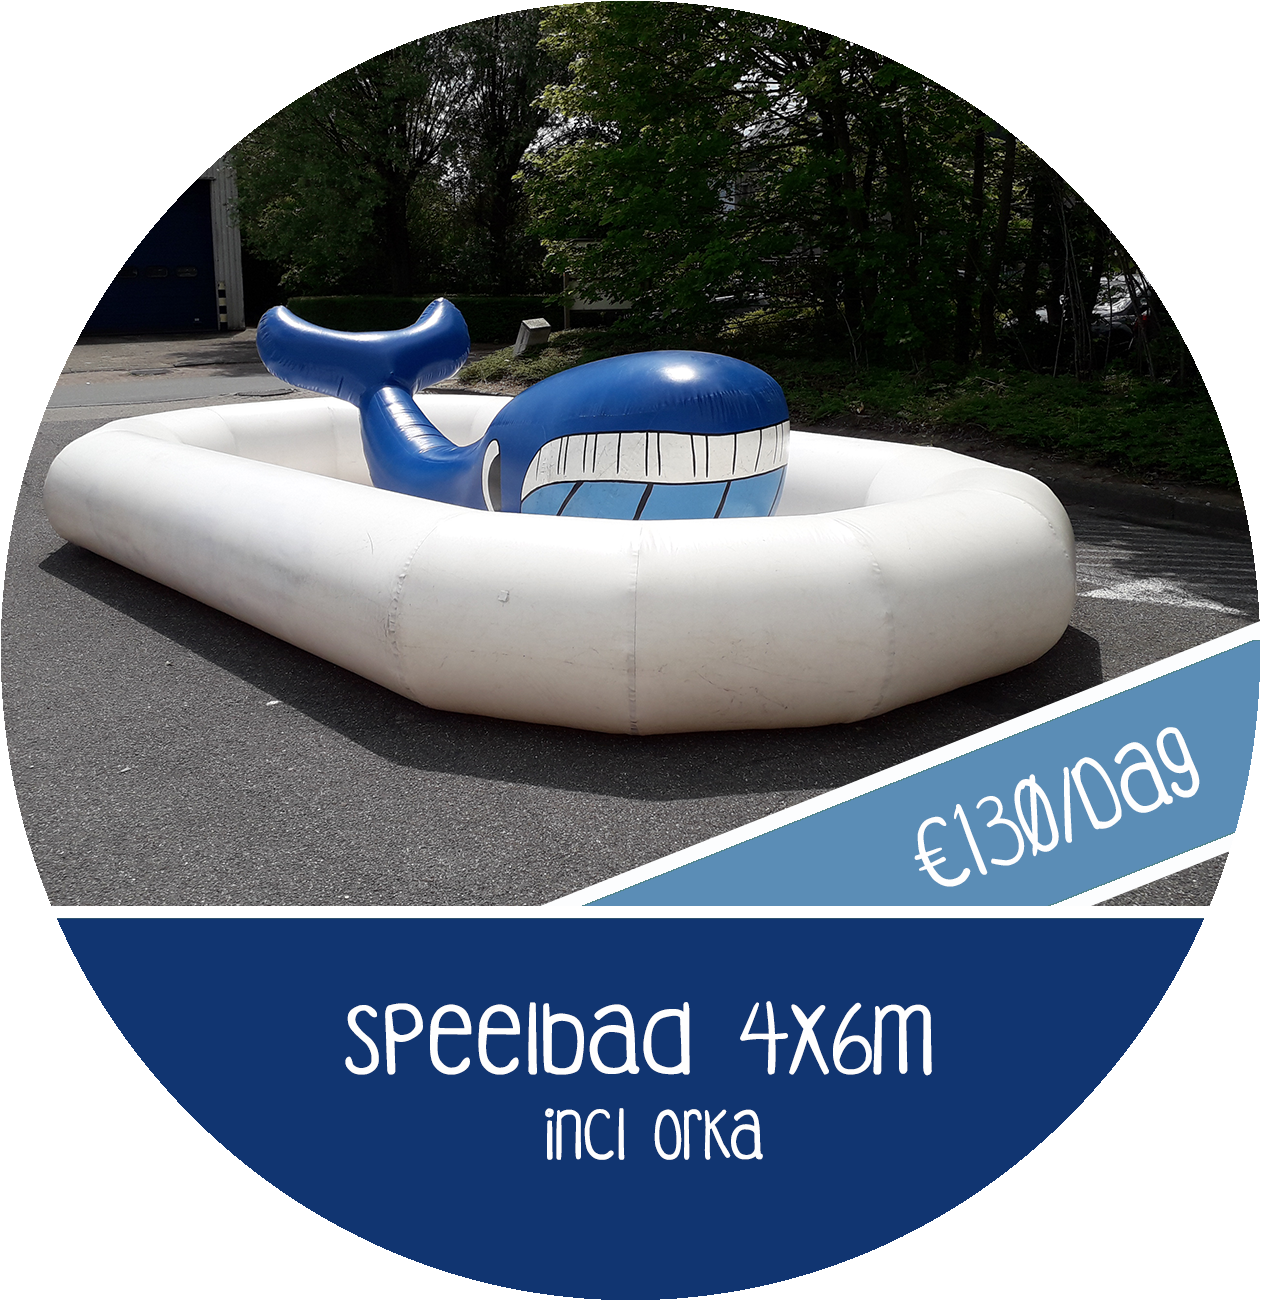 speelbad incl orka.png